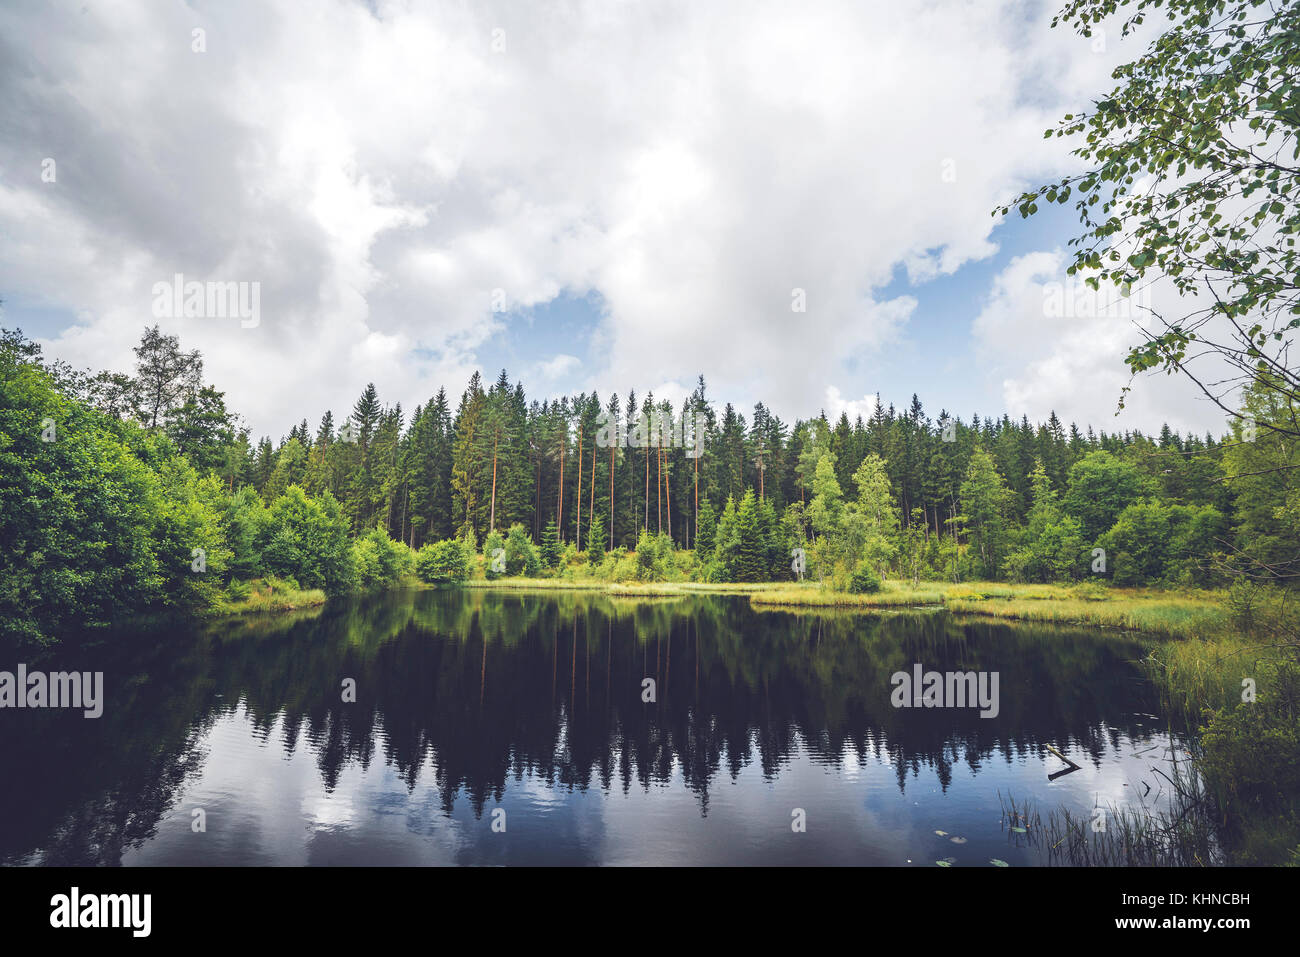 Calm lake wirh dark water in the middle of a forest with pine trees reflecting in the water - Stock Image